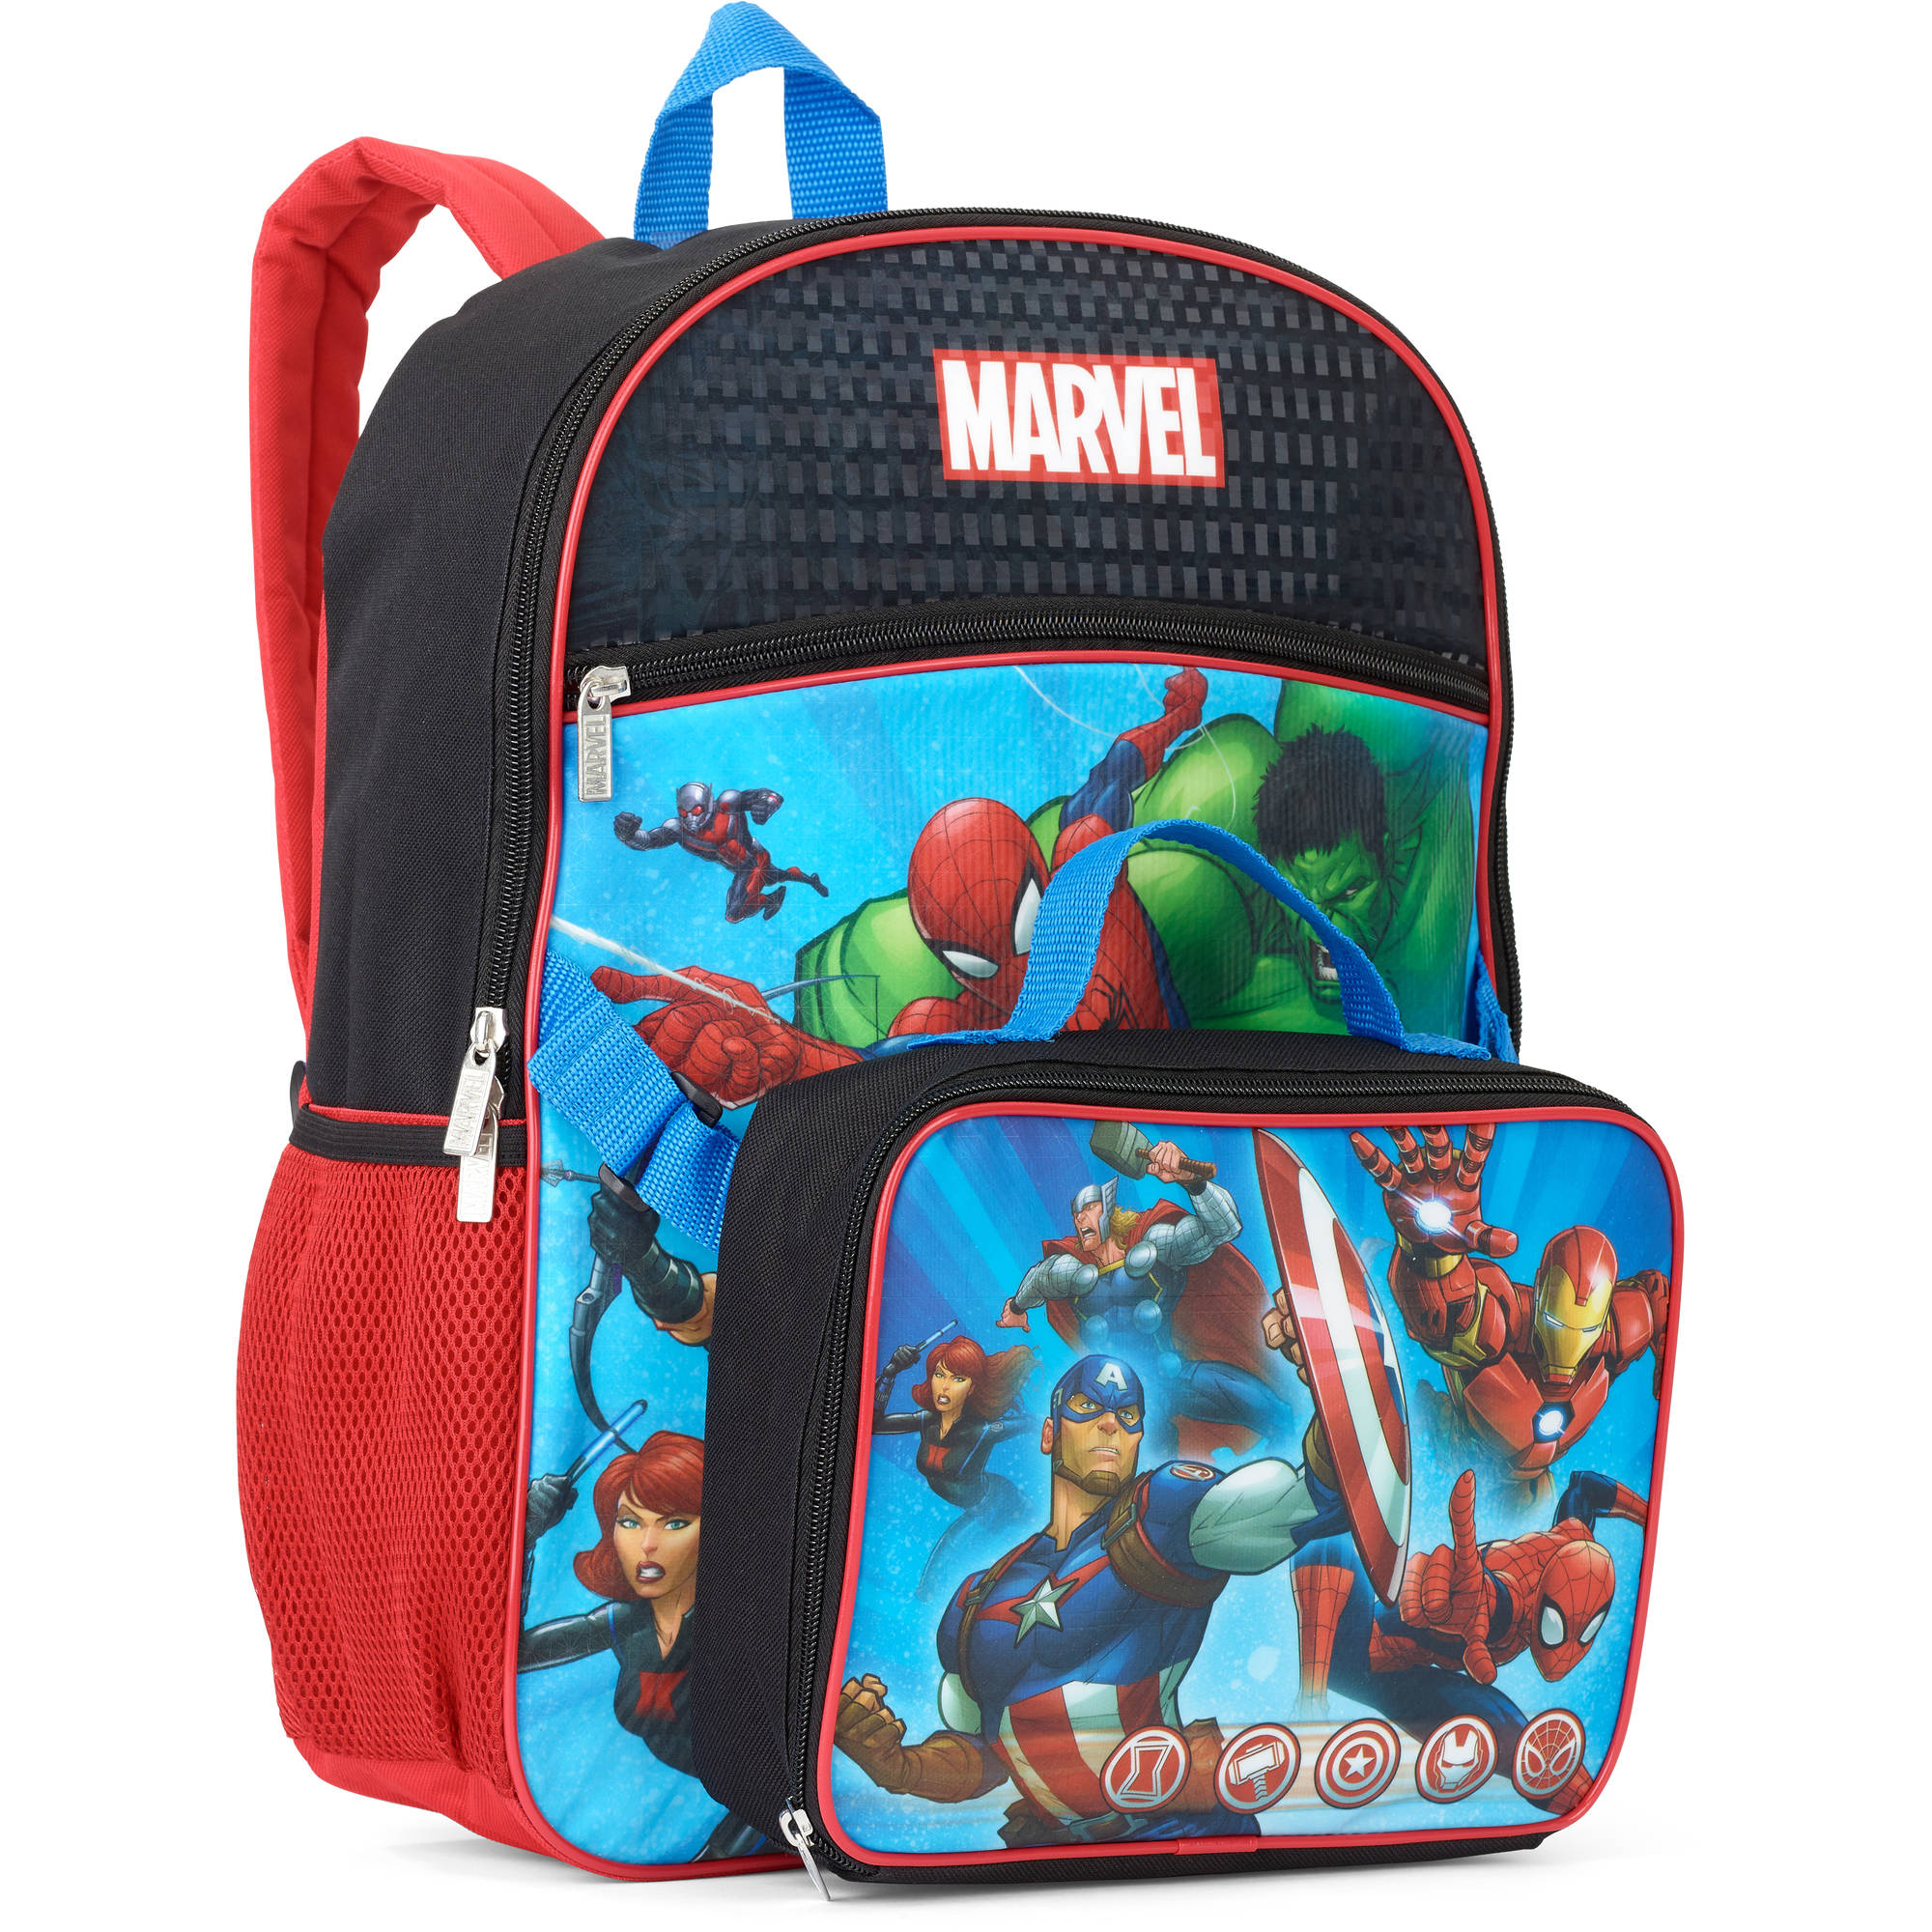 Avengers Backpack With Lunchbox